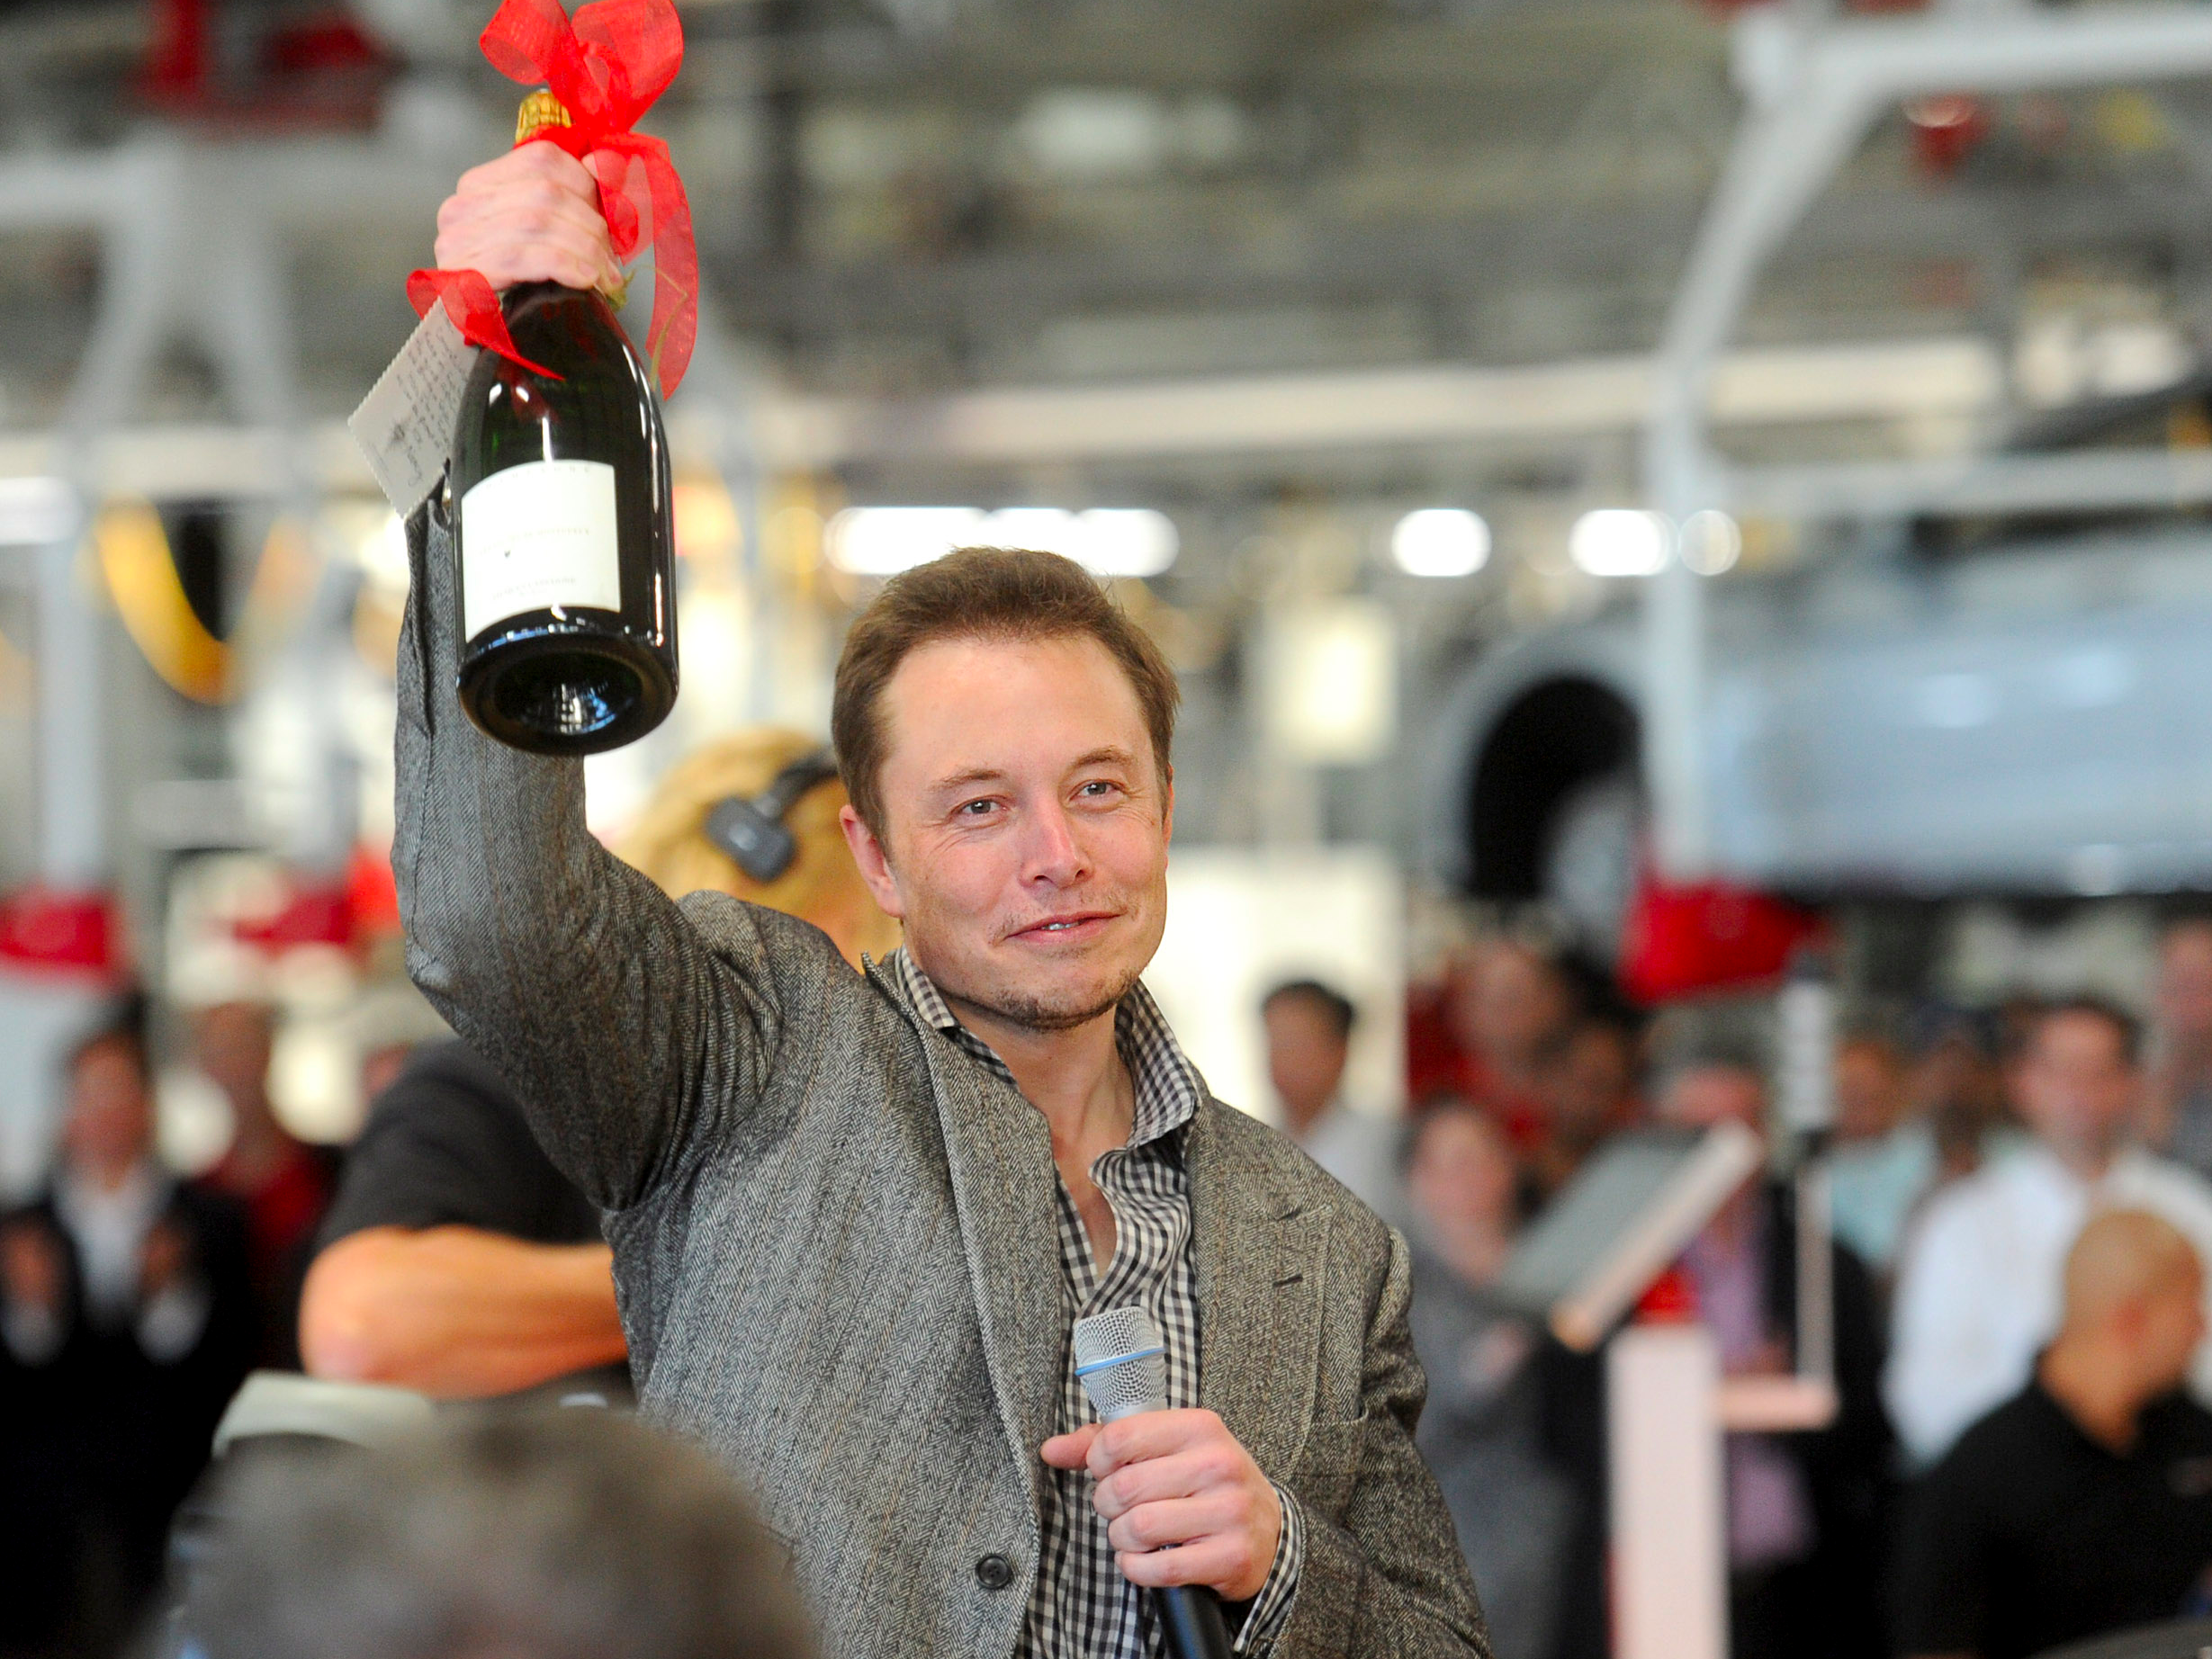 Morgan Stanley: Tesla and SpaceX merge into one company to